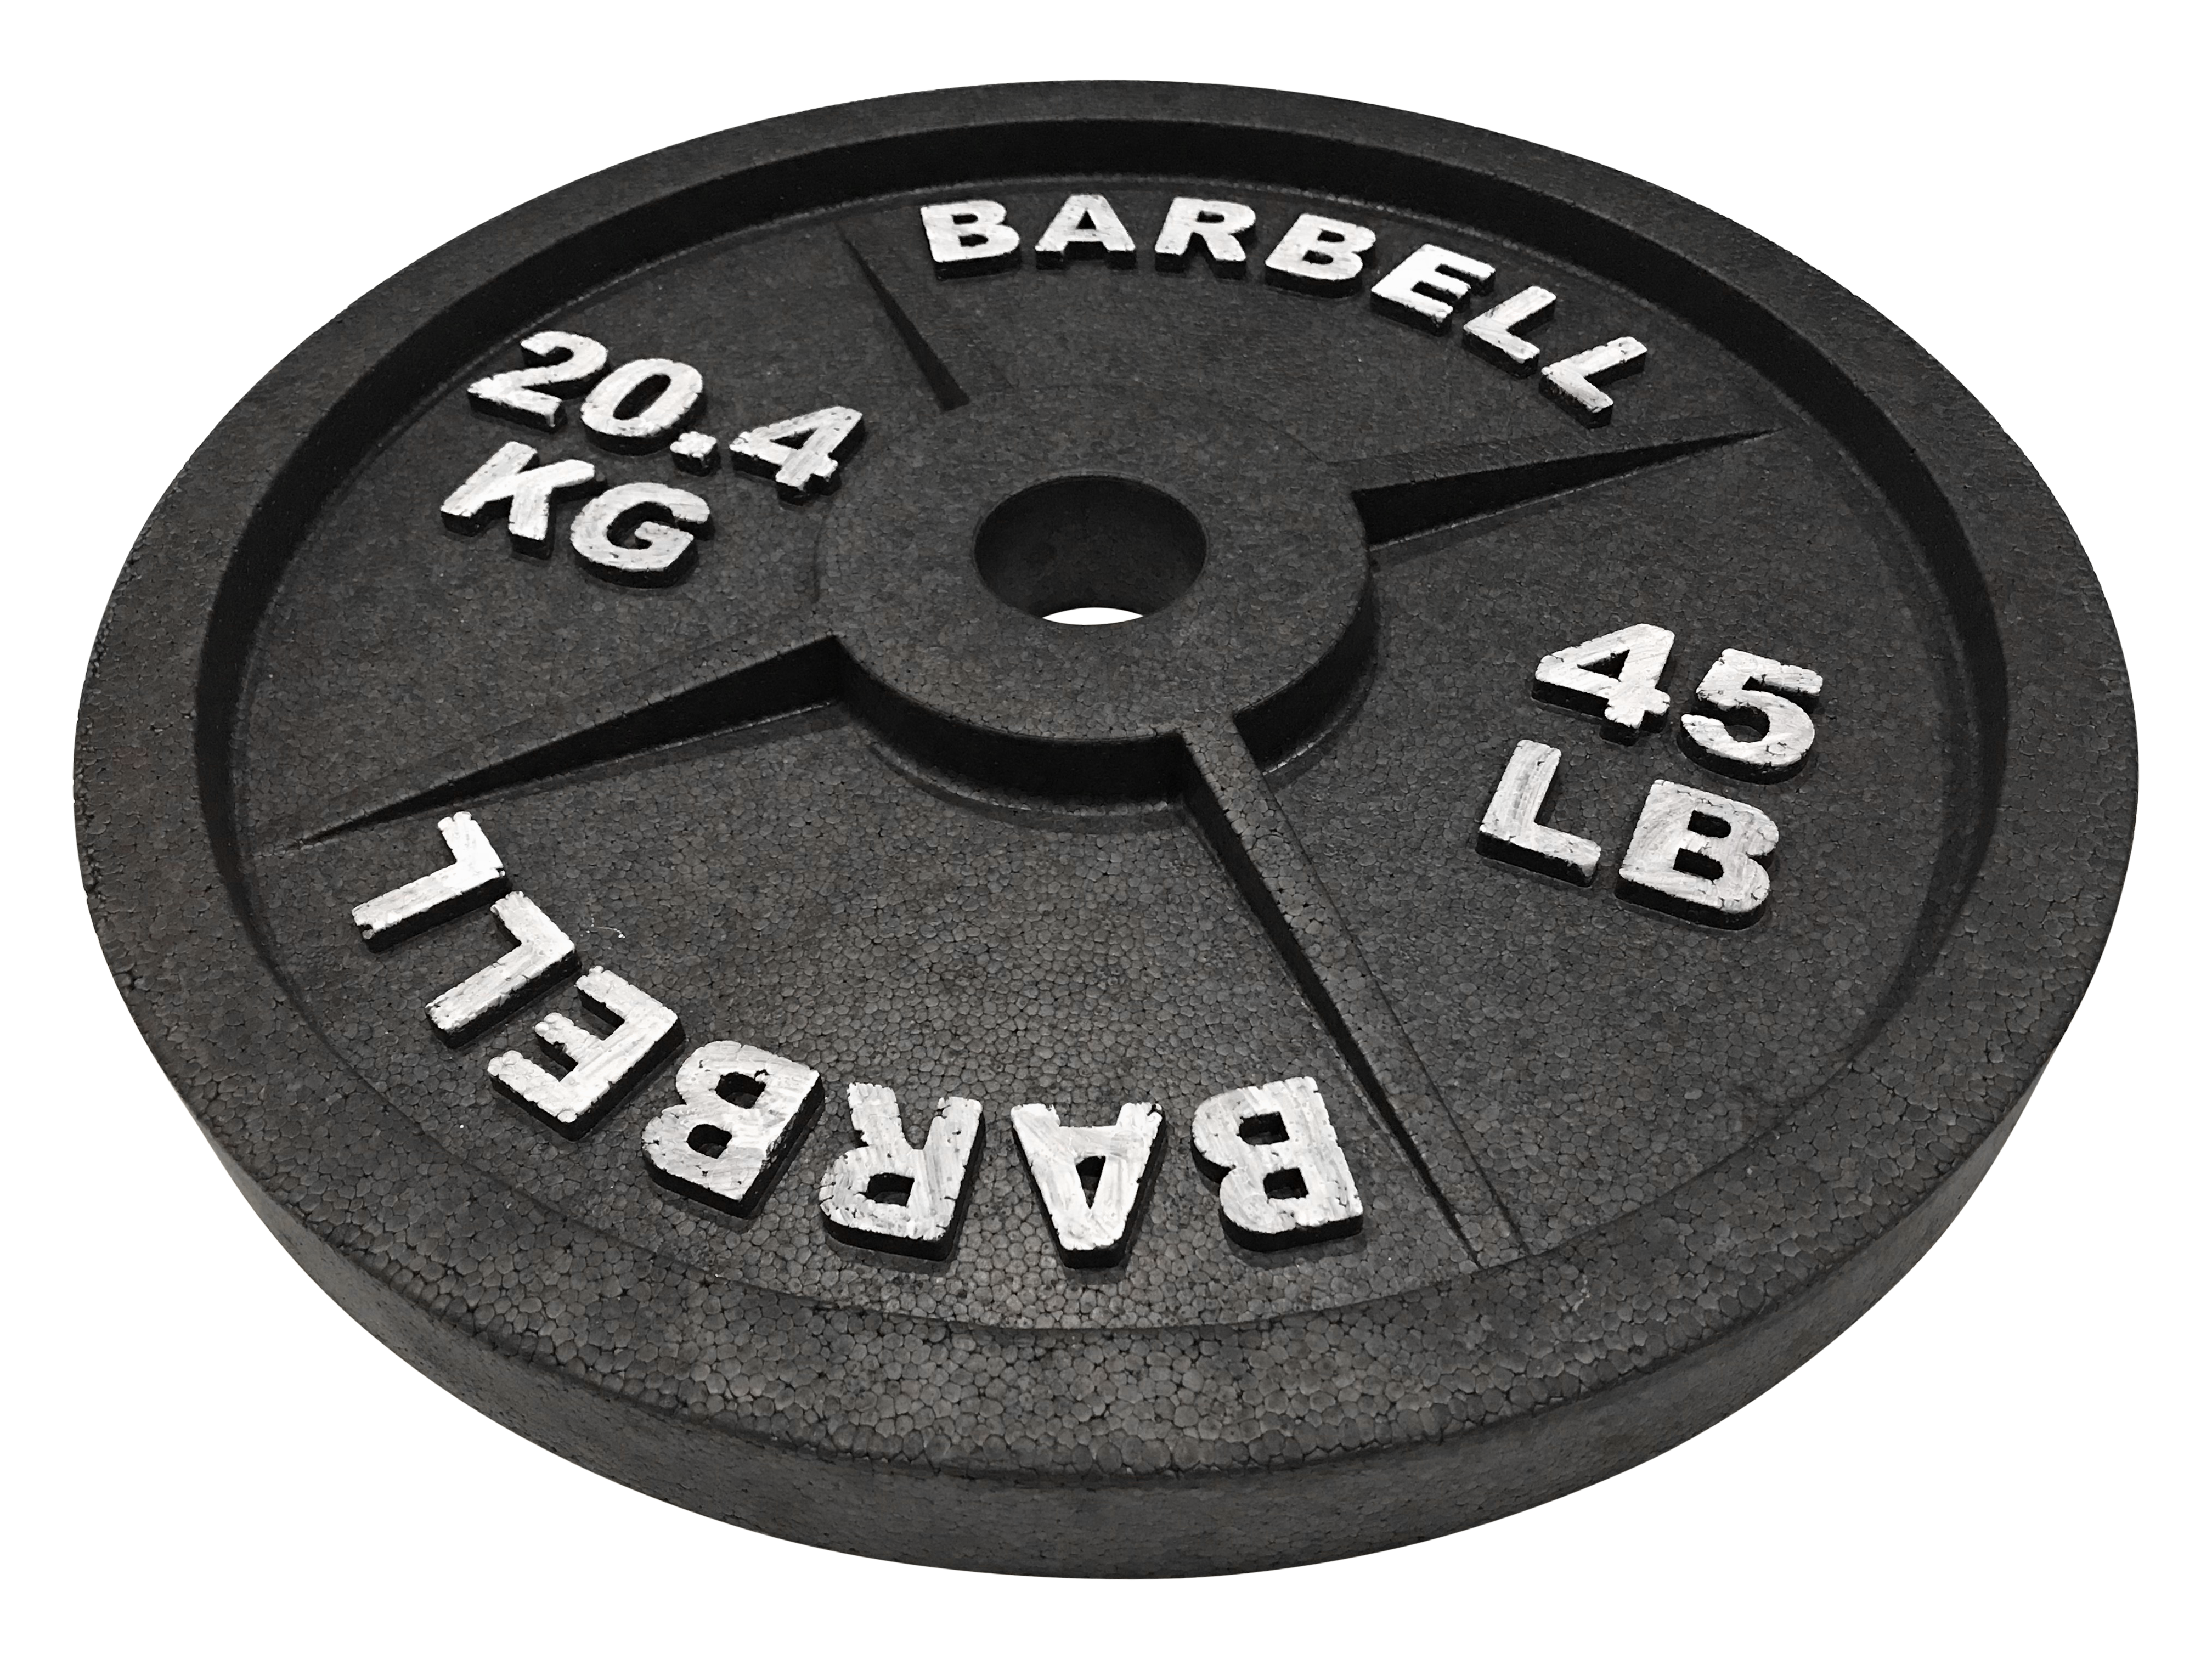 Fake Weights 45lb 45 Lb Plates Crossfit Display